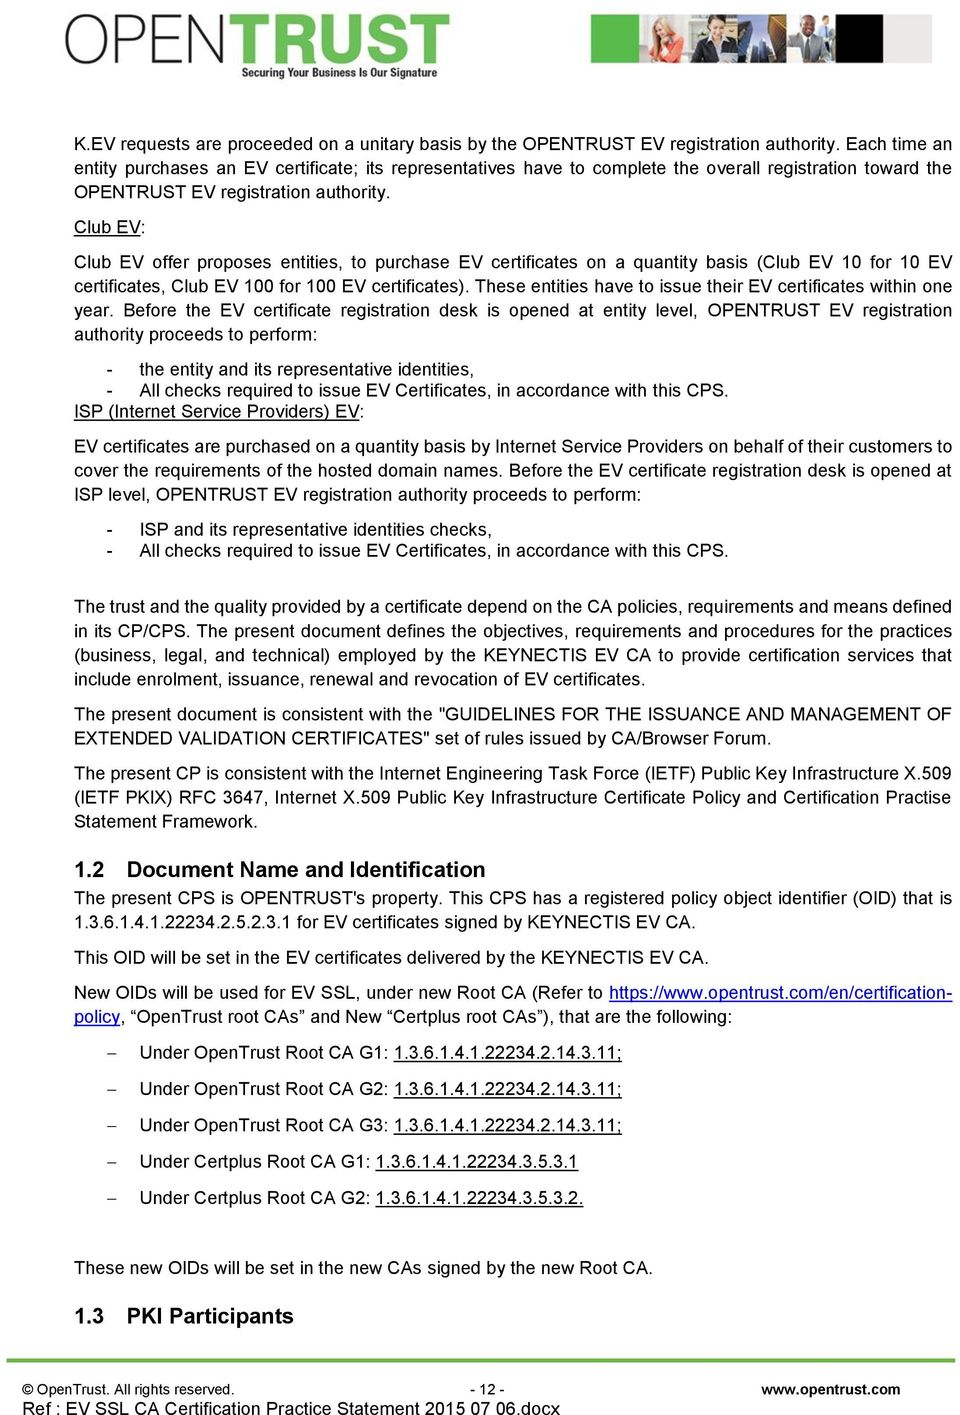 Club EV: Club EV offer proposes entities, to purchase EV certificates on a quantity basis (Club EV 10 for 10 EV certificates, Club EV 100 for 100 EV certificates).